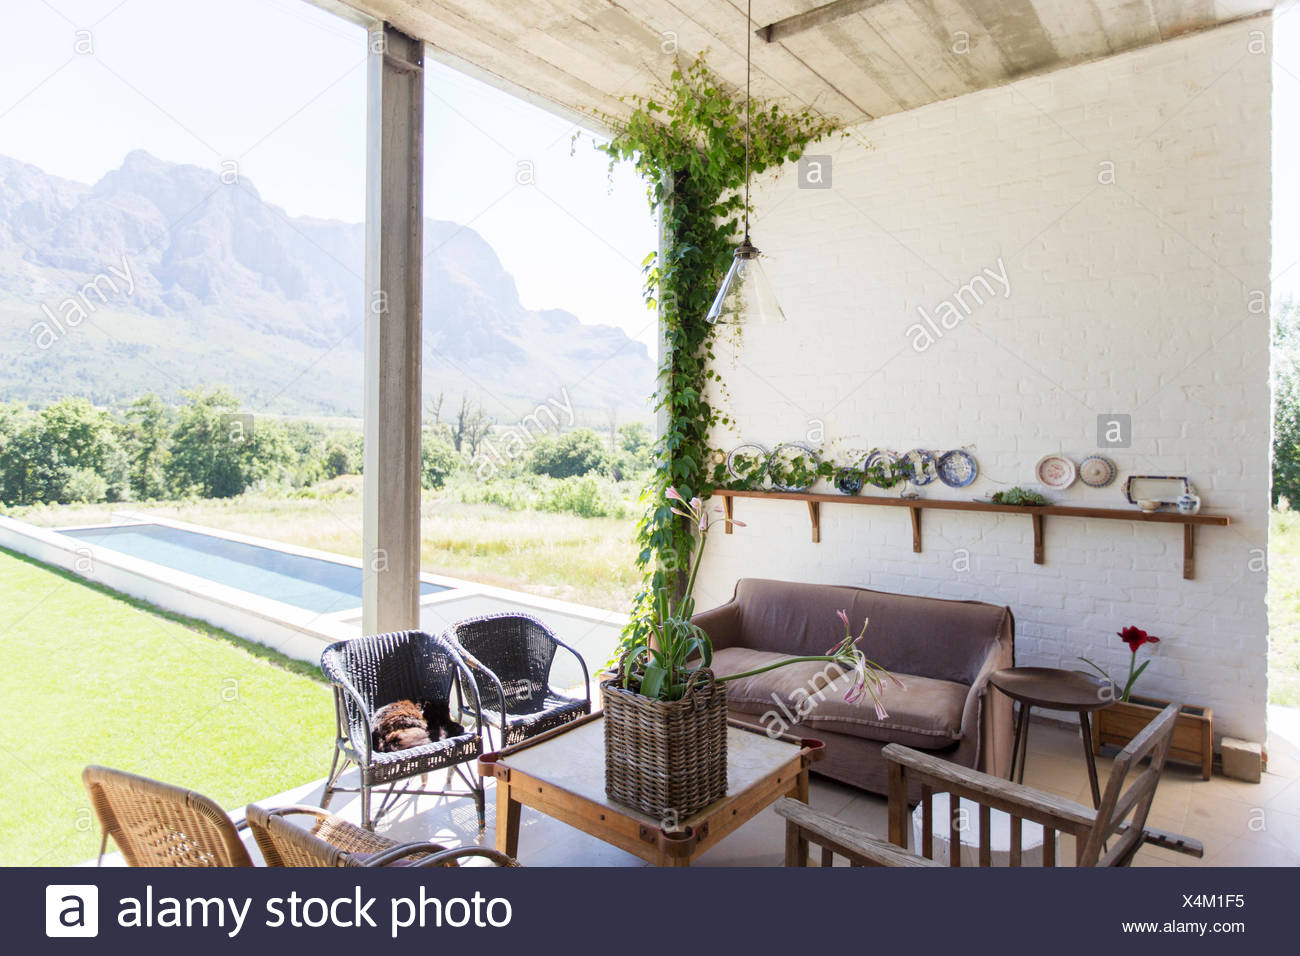 Living area overlooking backyard - Stock Image